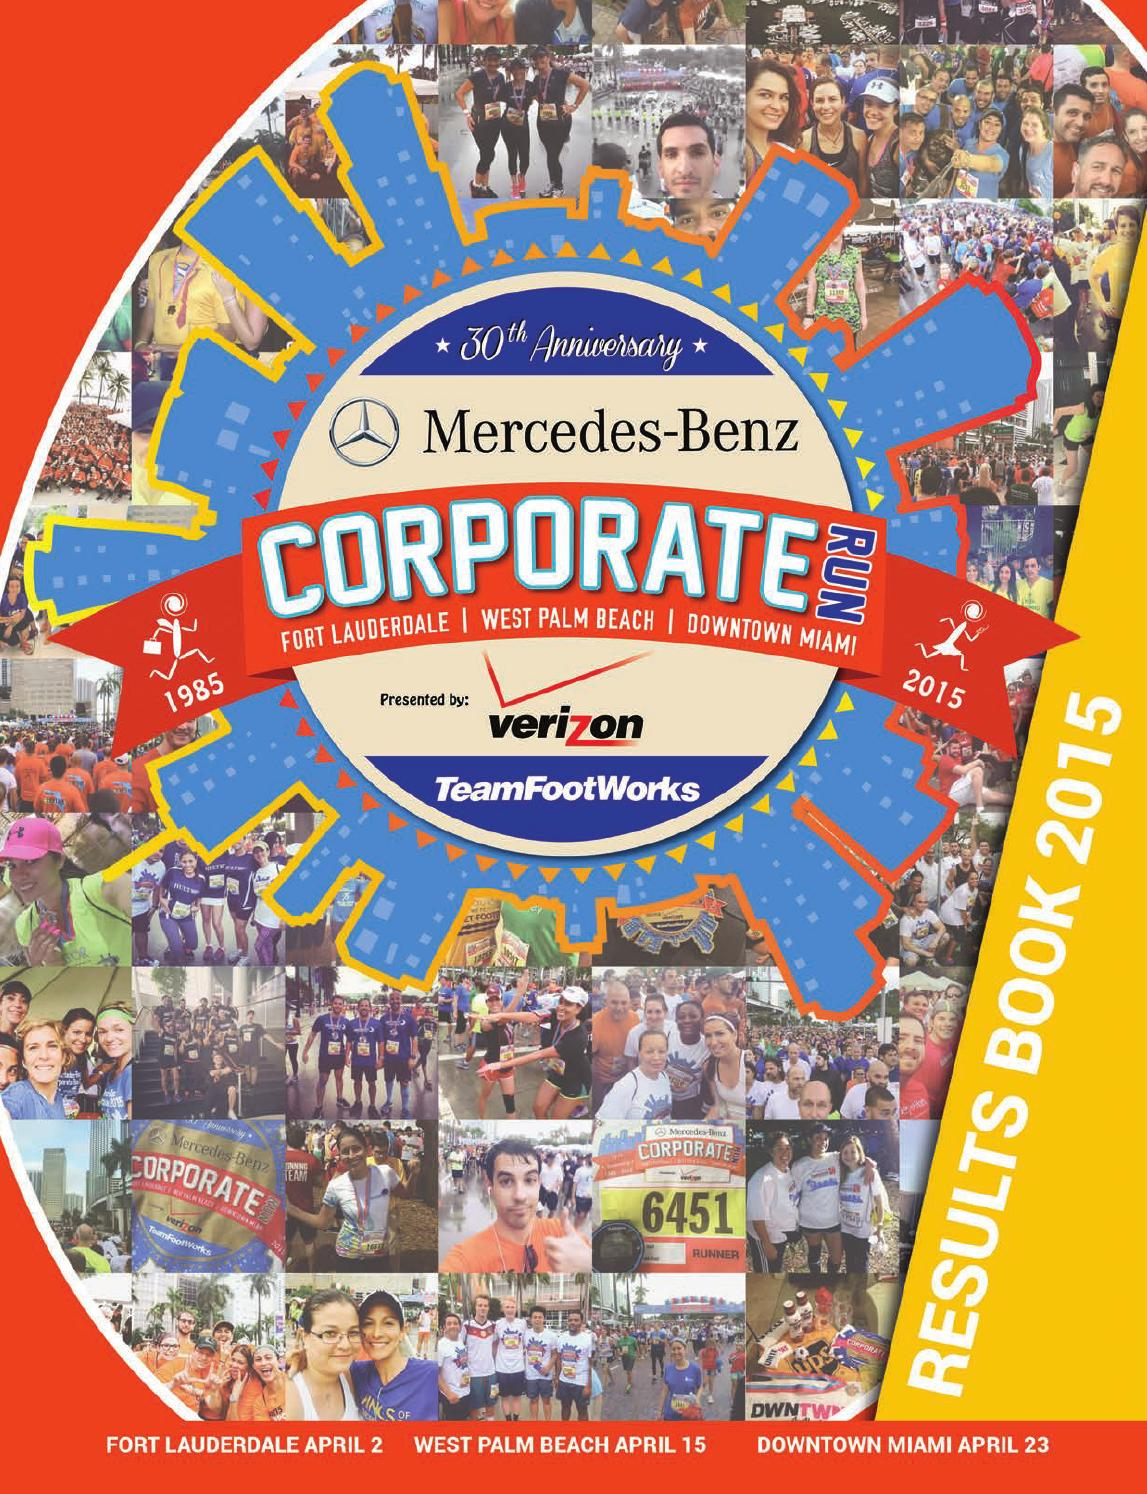 Mercedes benz corporate run results book 2015 by for Mercedes benz corporate